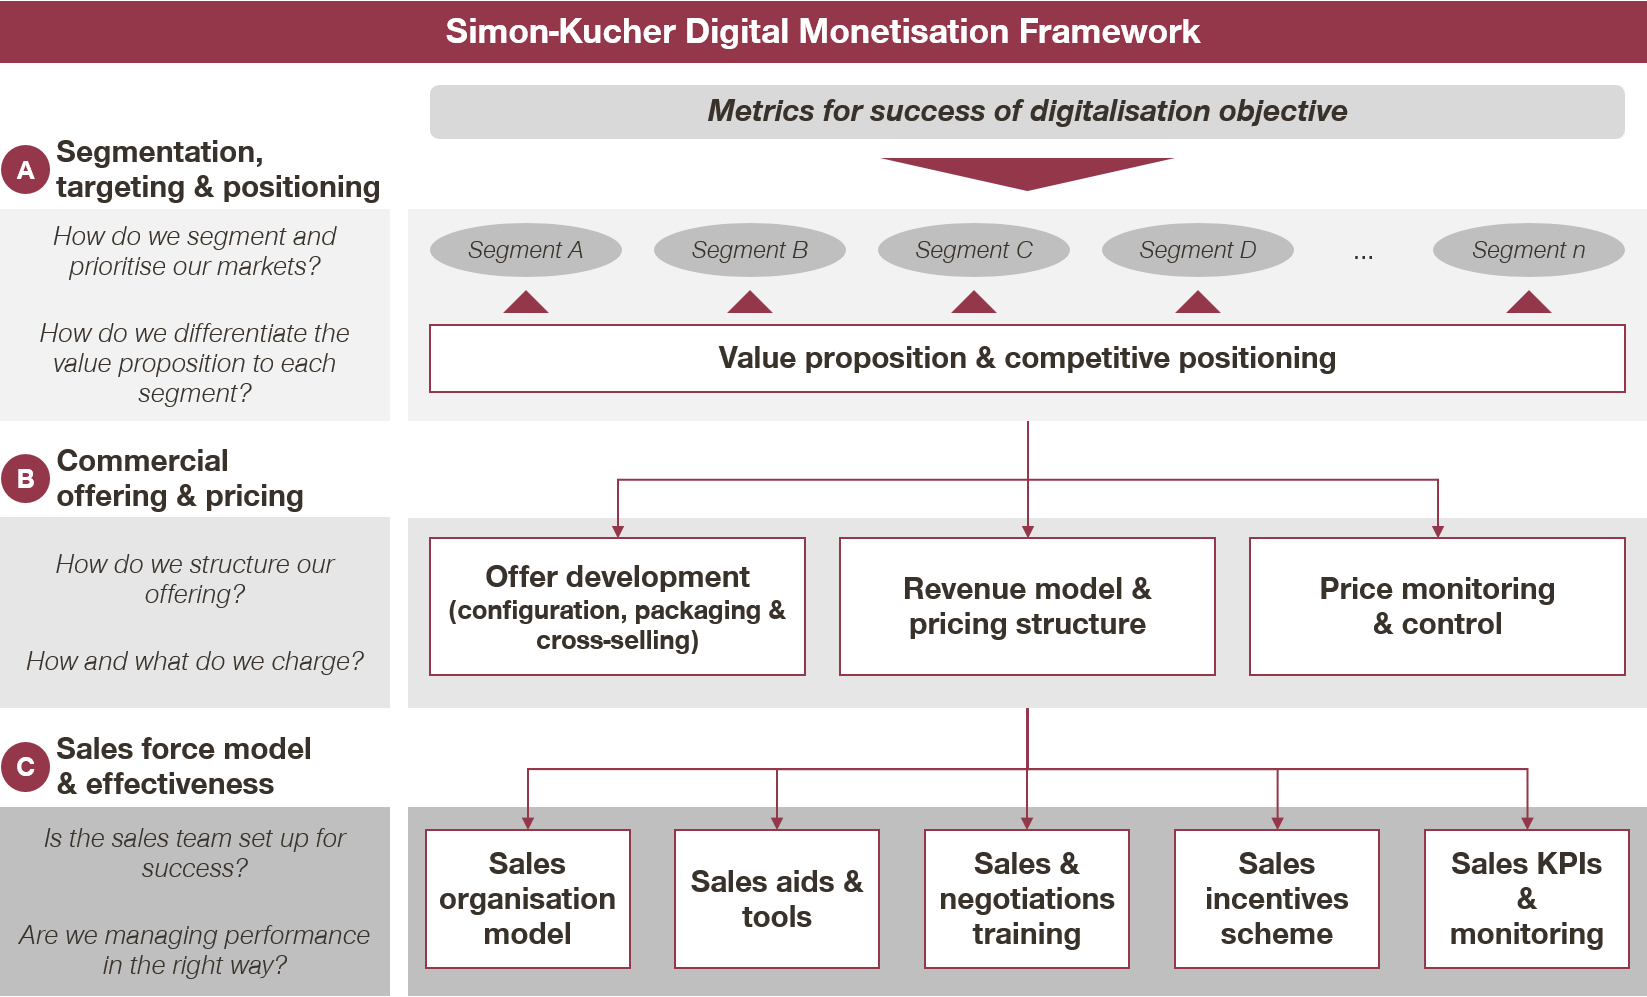 Five key lessons in monetising digital products - Digital Monetisation Framework - courtesy of Simon-Kucher & Partners